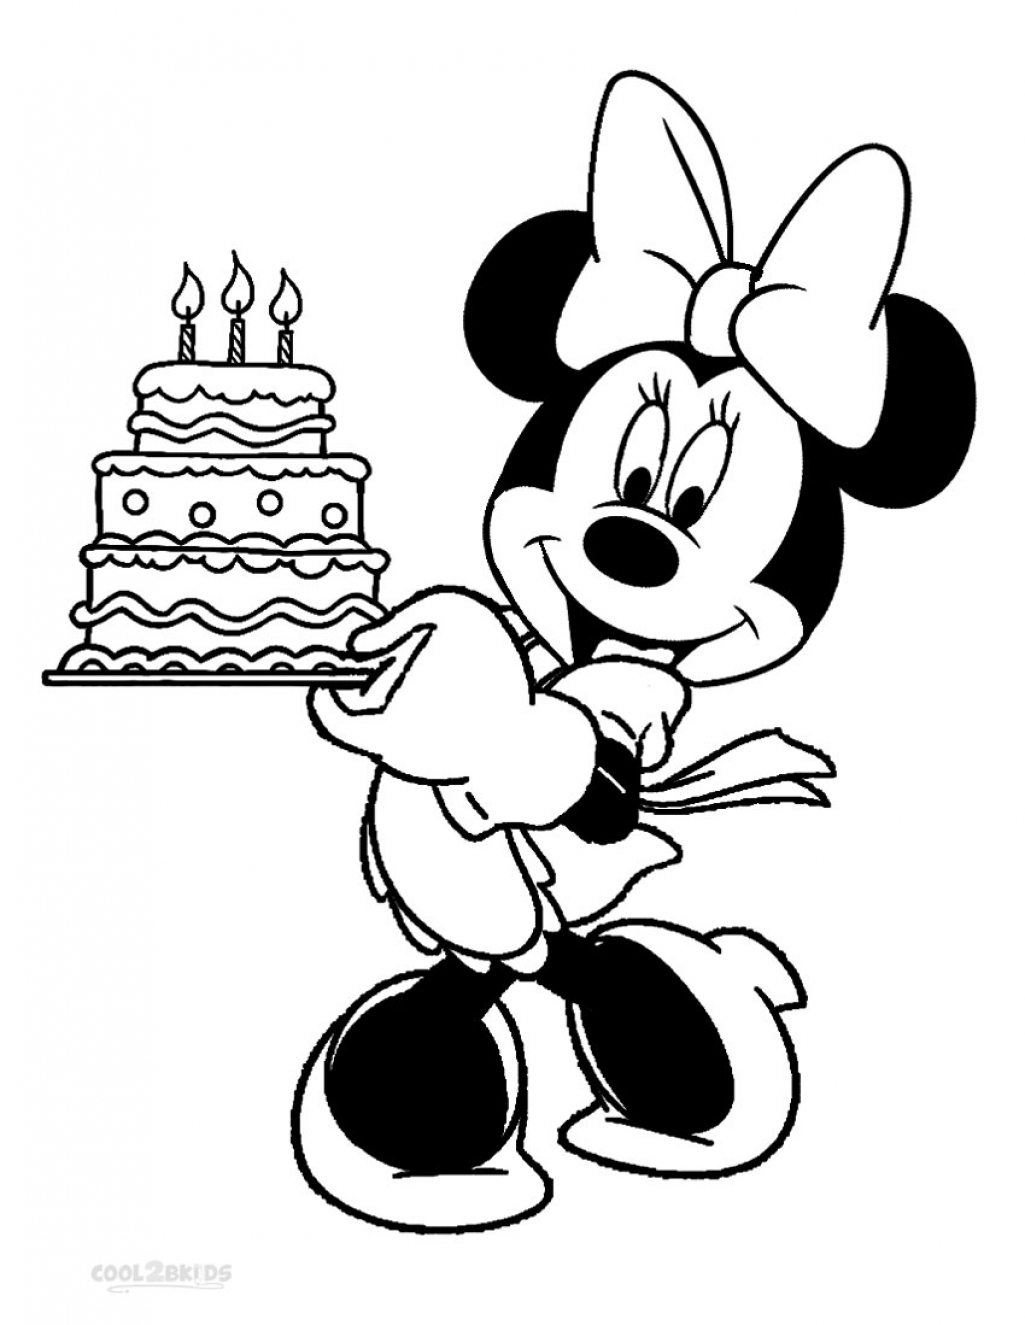 1025x1325 Mickey Mouse Birthday Coloring Pages, Free Disney Minnie Mouse